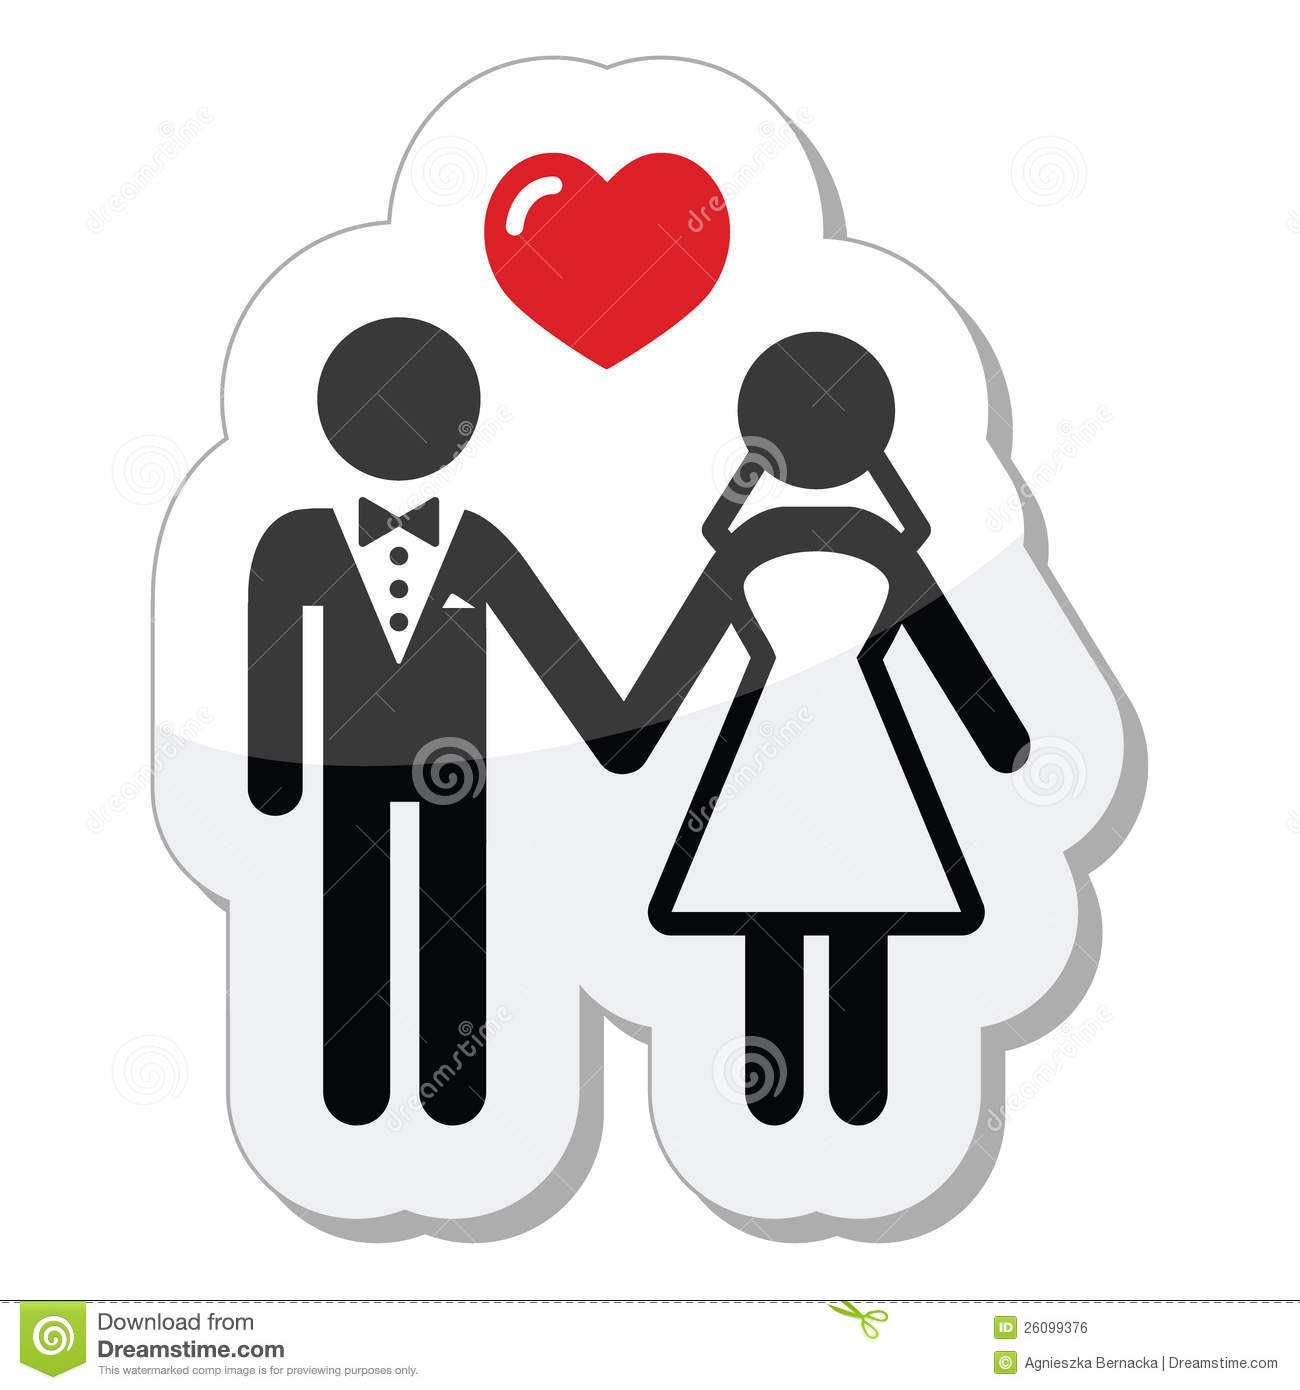 Wedding Couple Icon As Glossy Label Royalty Free Stock Image - Image ...